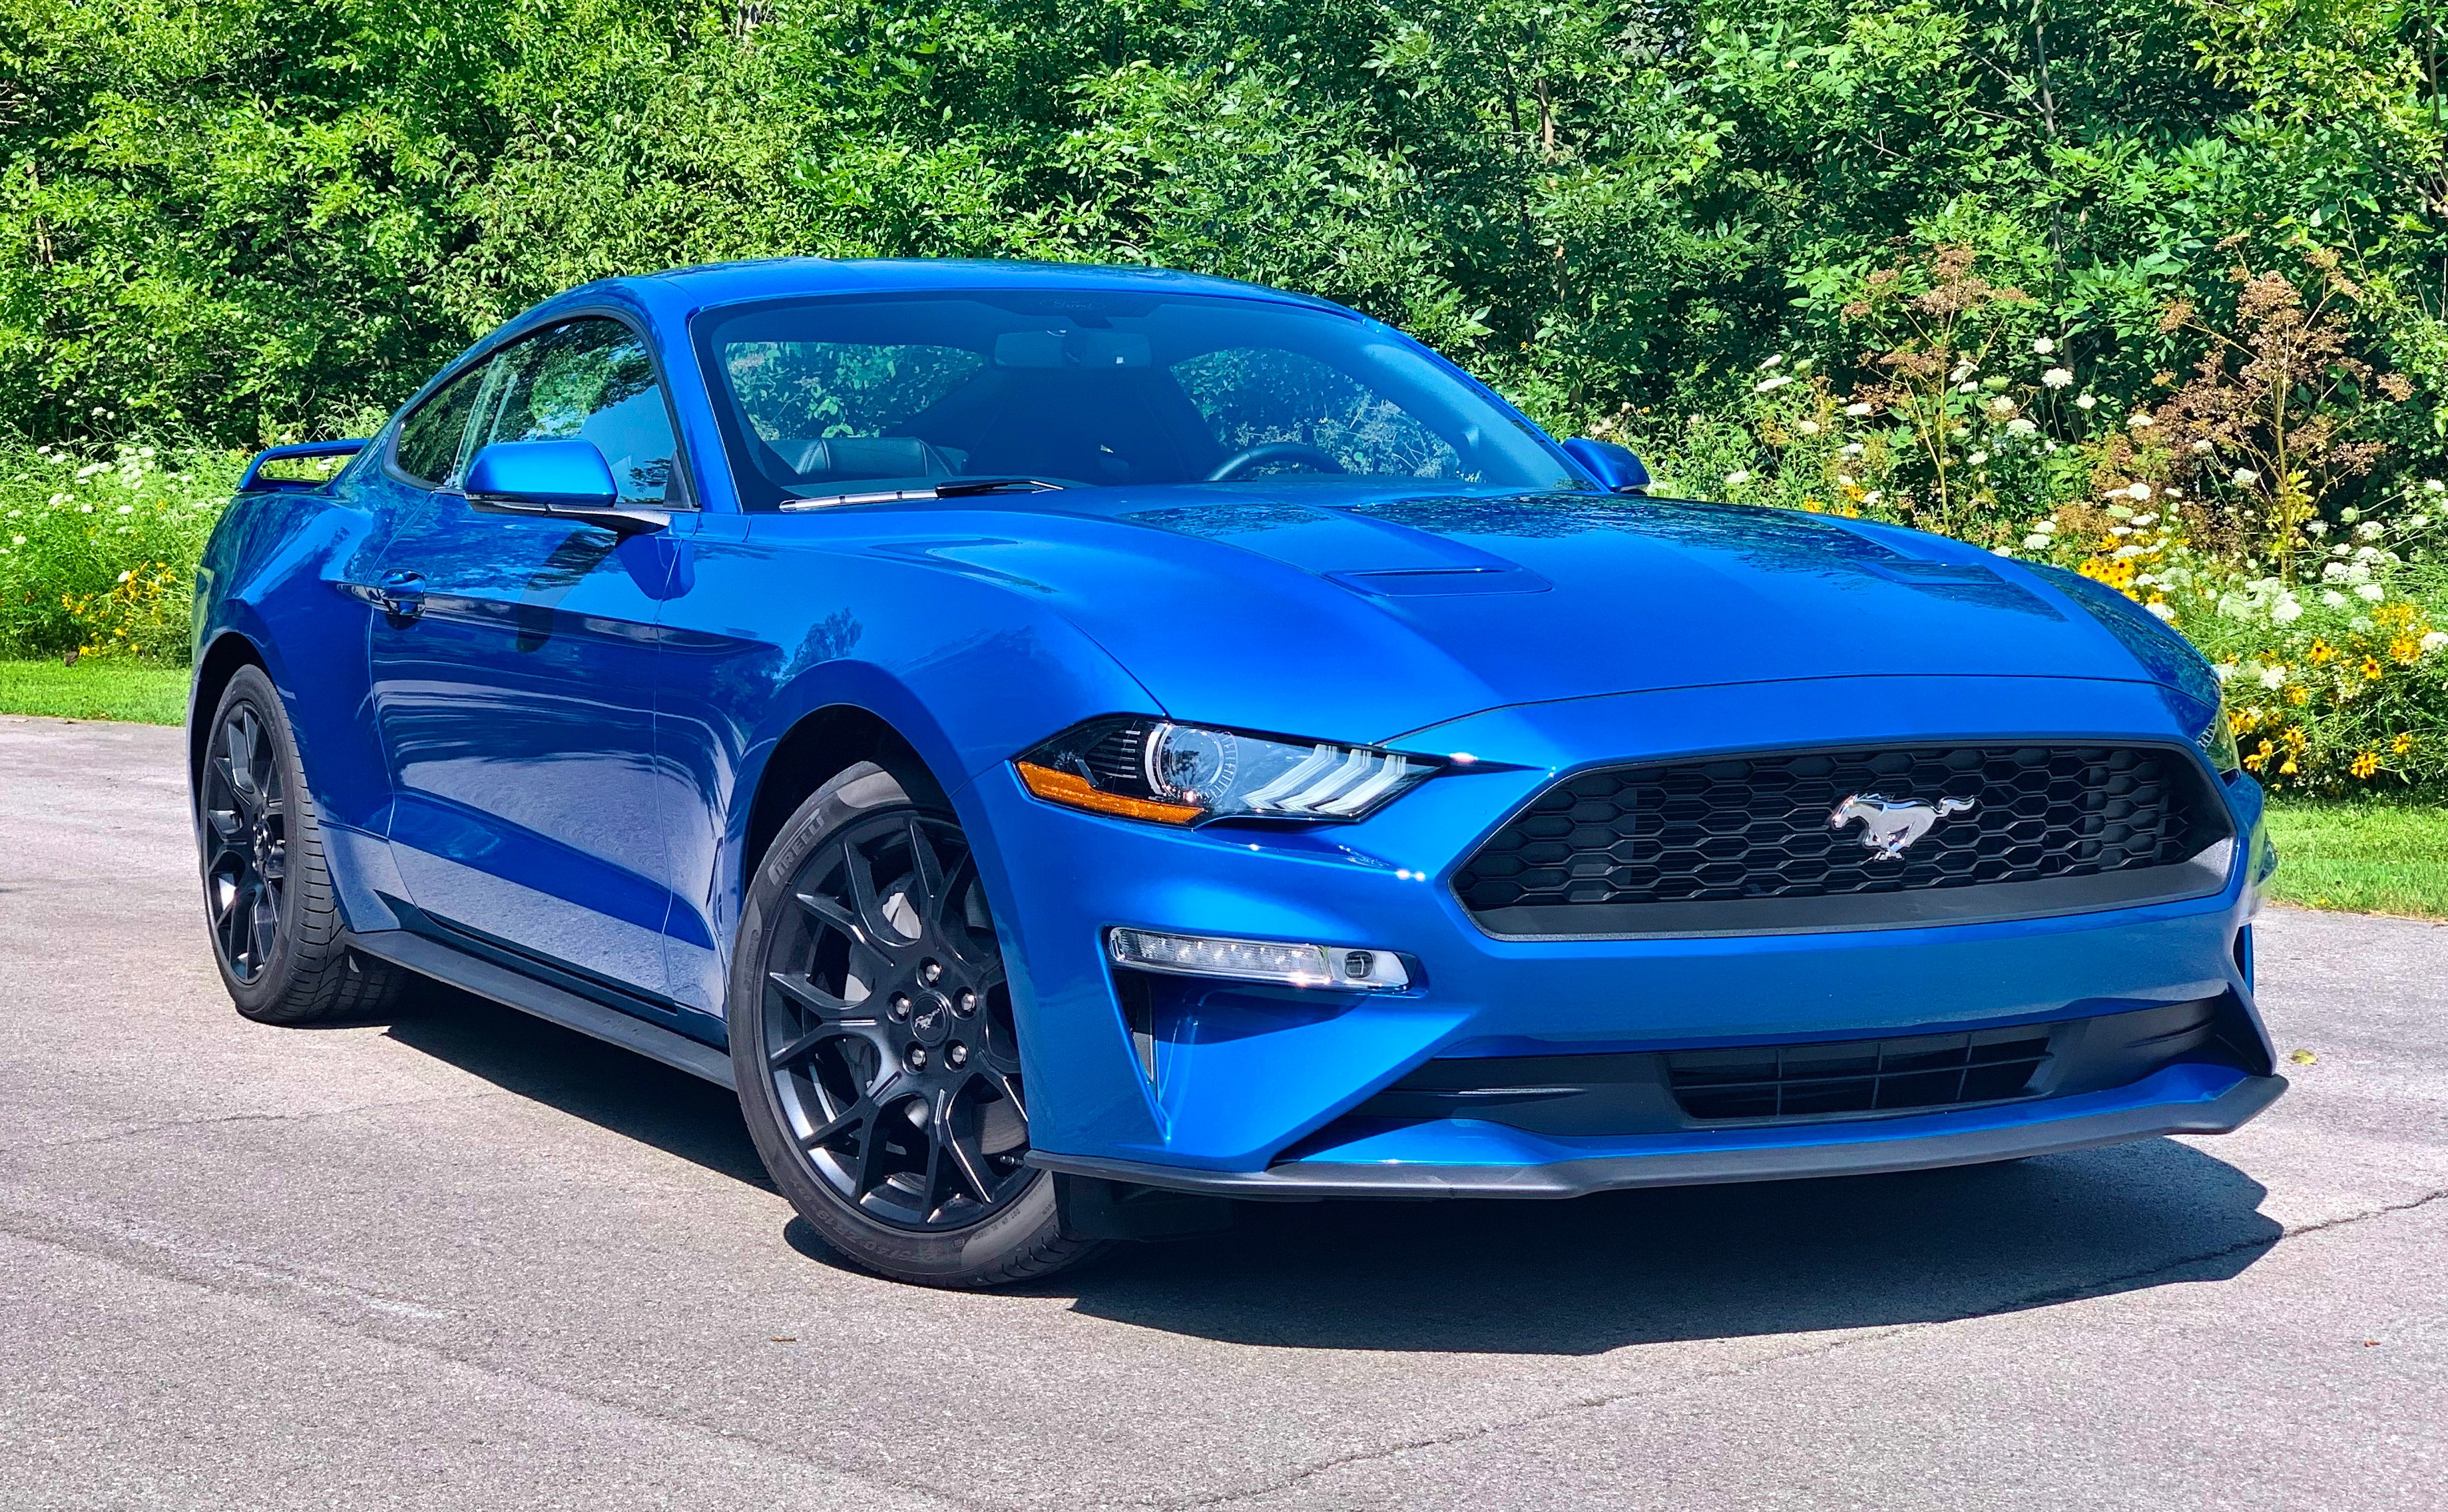 An annual premium is defined as the amount that someone is required to pay each year in order to keep his or her insurance policy active. 2019 Mustang Ecoboost Premium Review